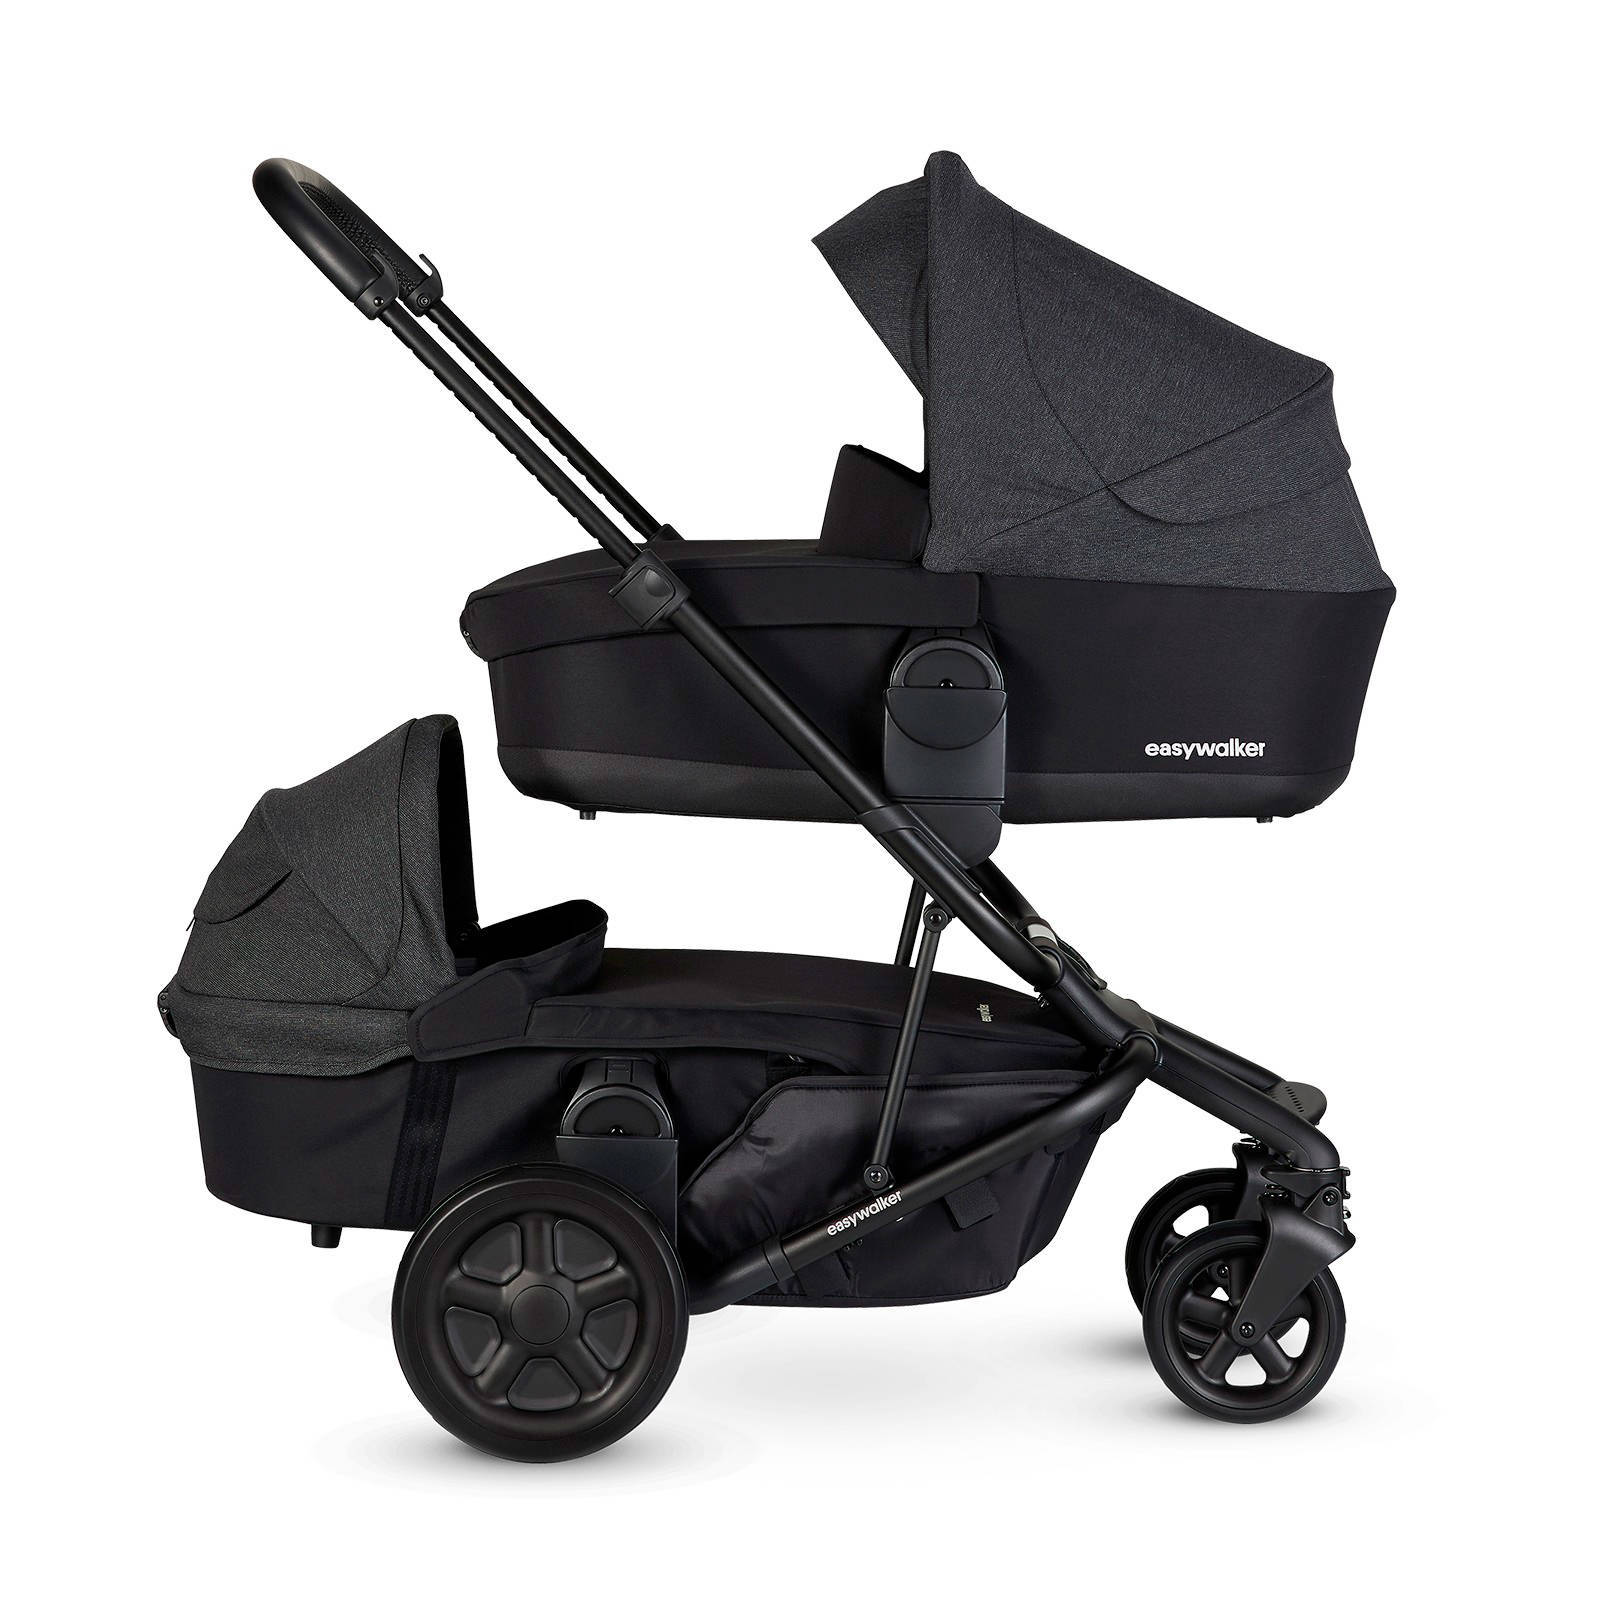 Kinderwagen Easywalker Duo Harvey² 2 In 1 Duo Kinderwagen Night Black